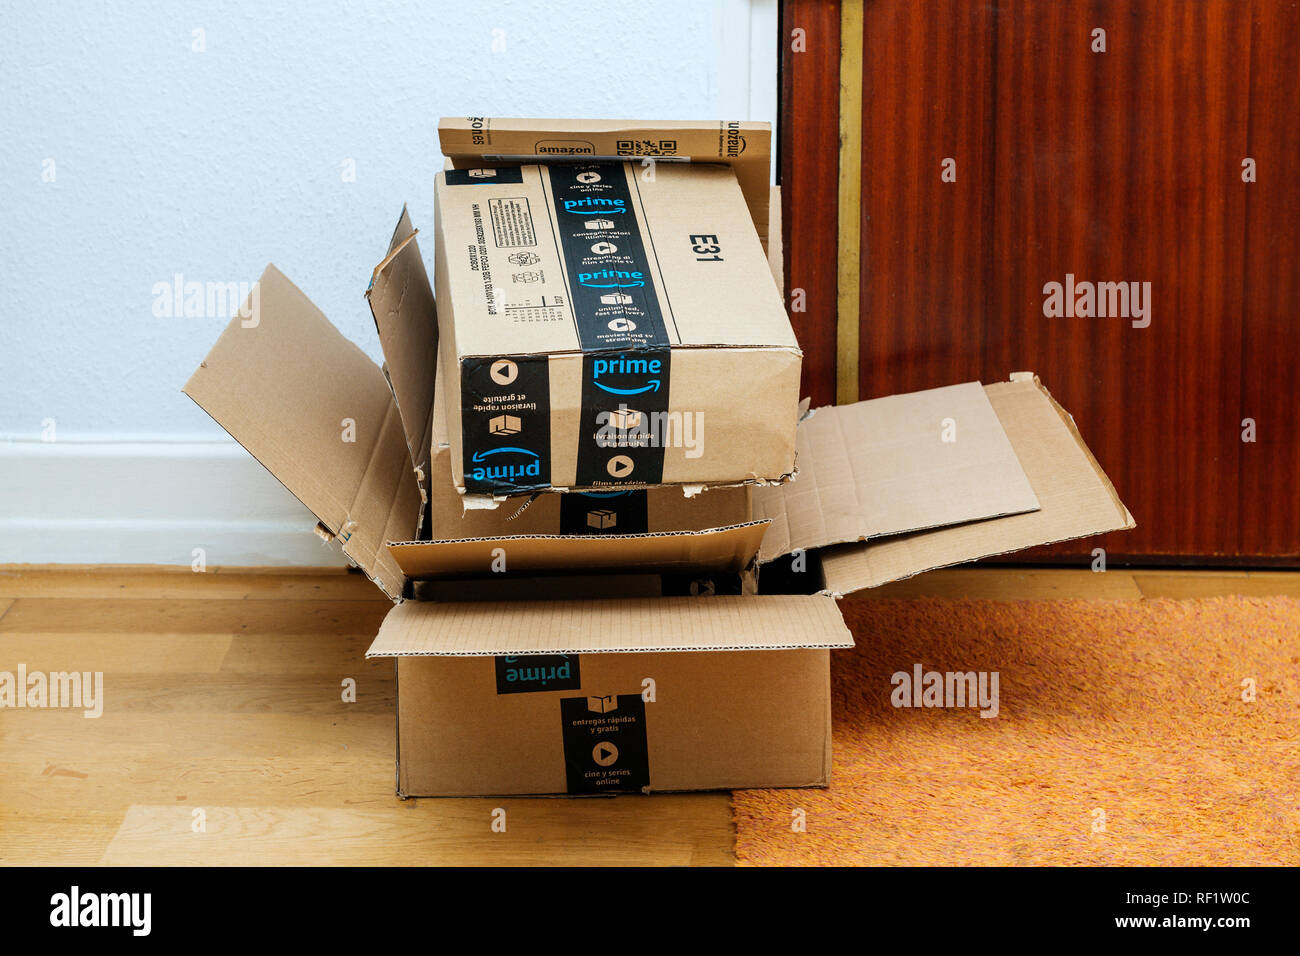 Amazon Usa Livraison France Amazon Boxes Shipped To A Home Stock Photos Amazon Boxes Shipped